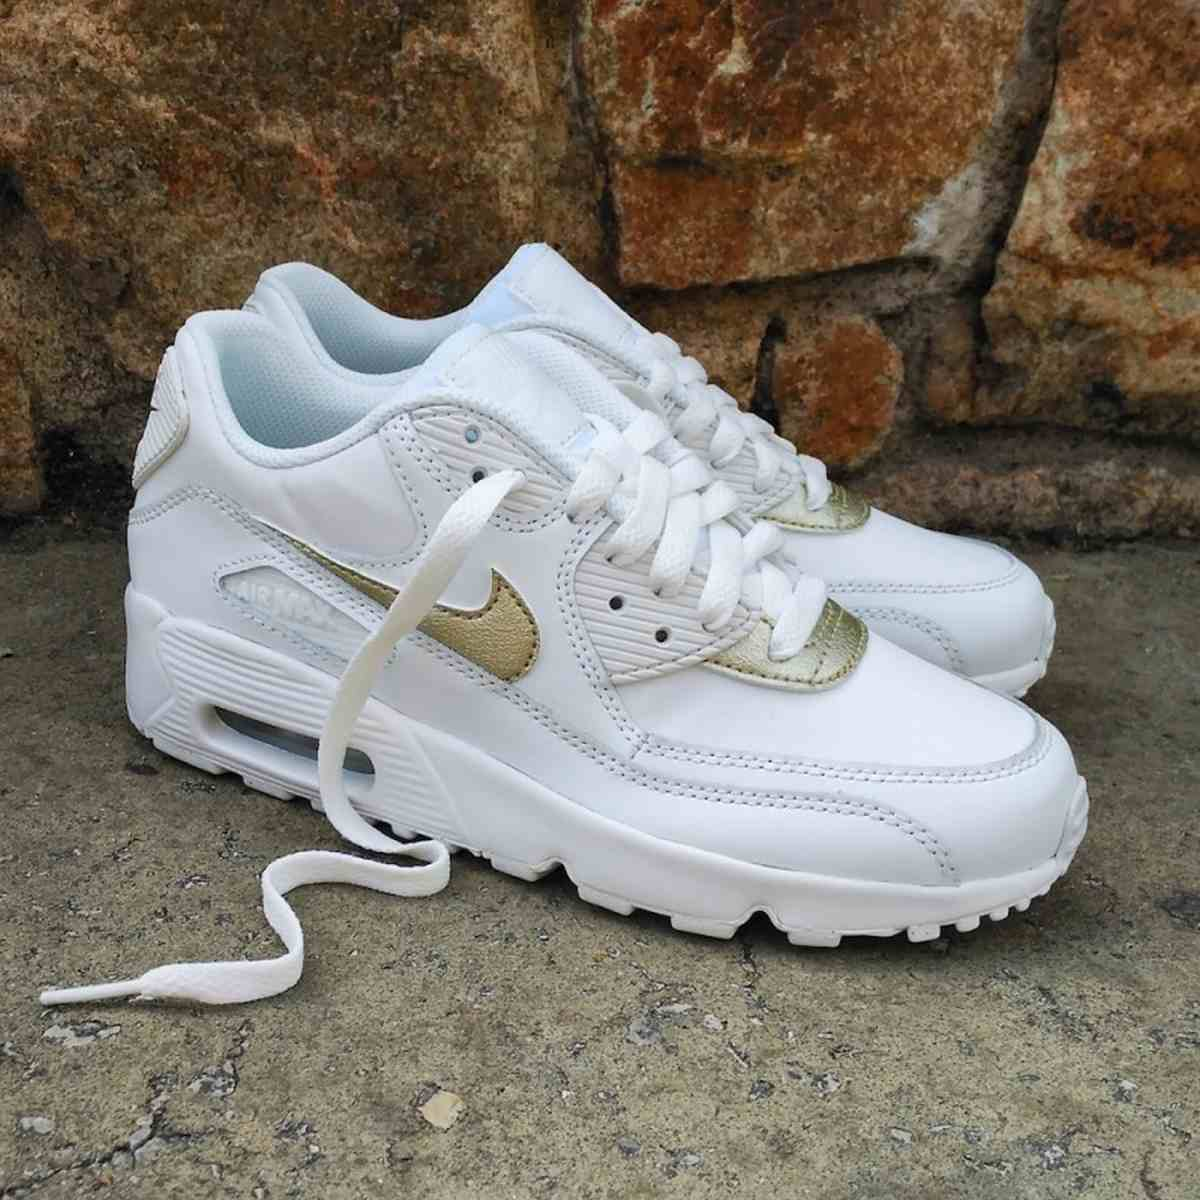 Nike Wmns Air Max 90 Leather Gs White 833376 103